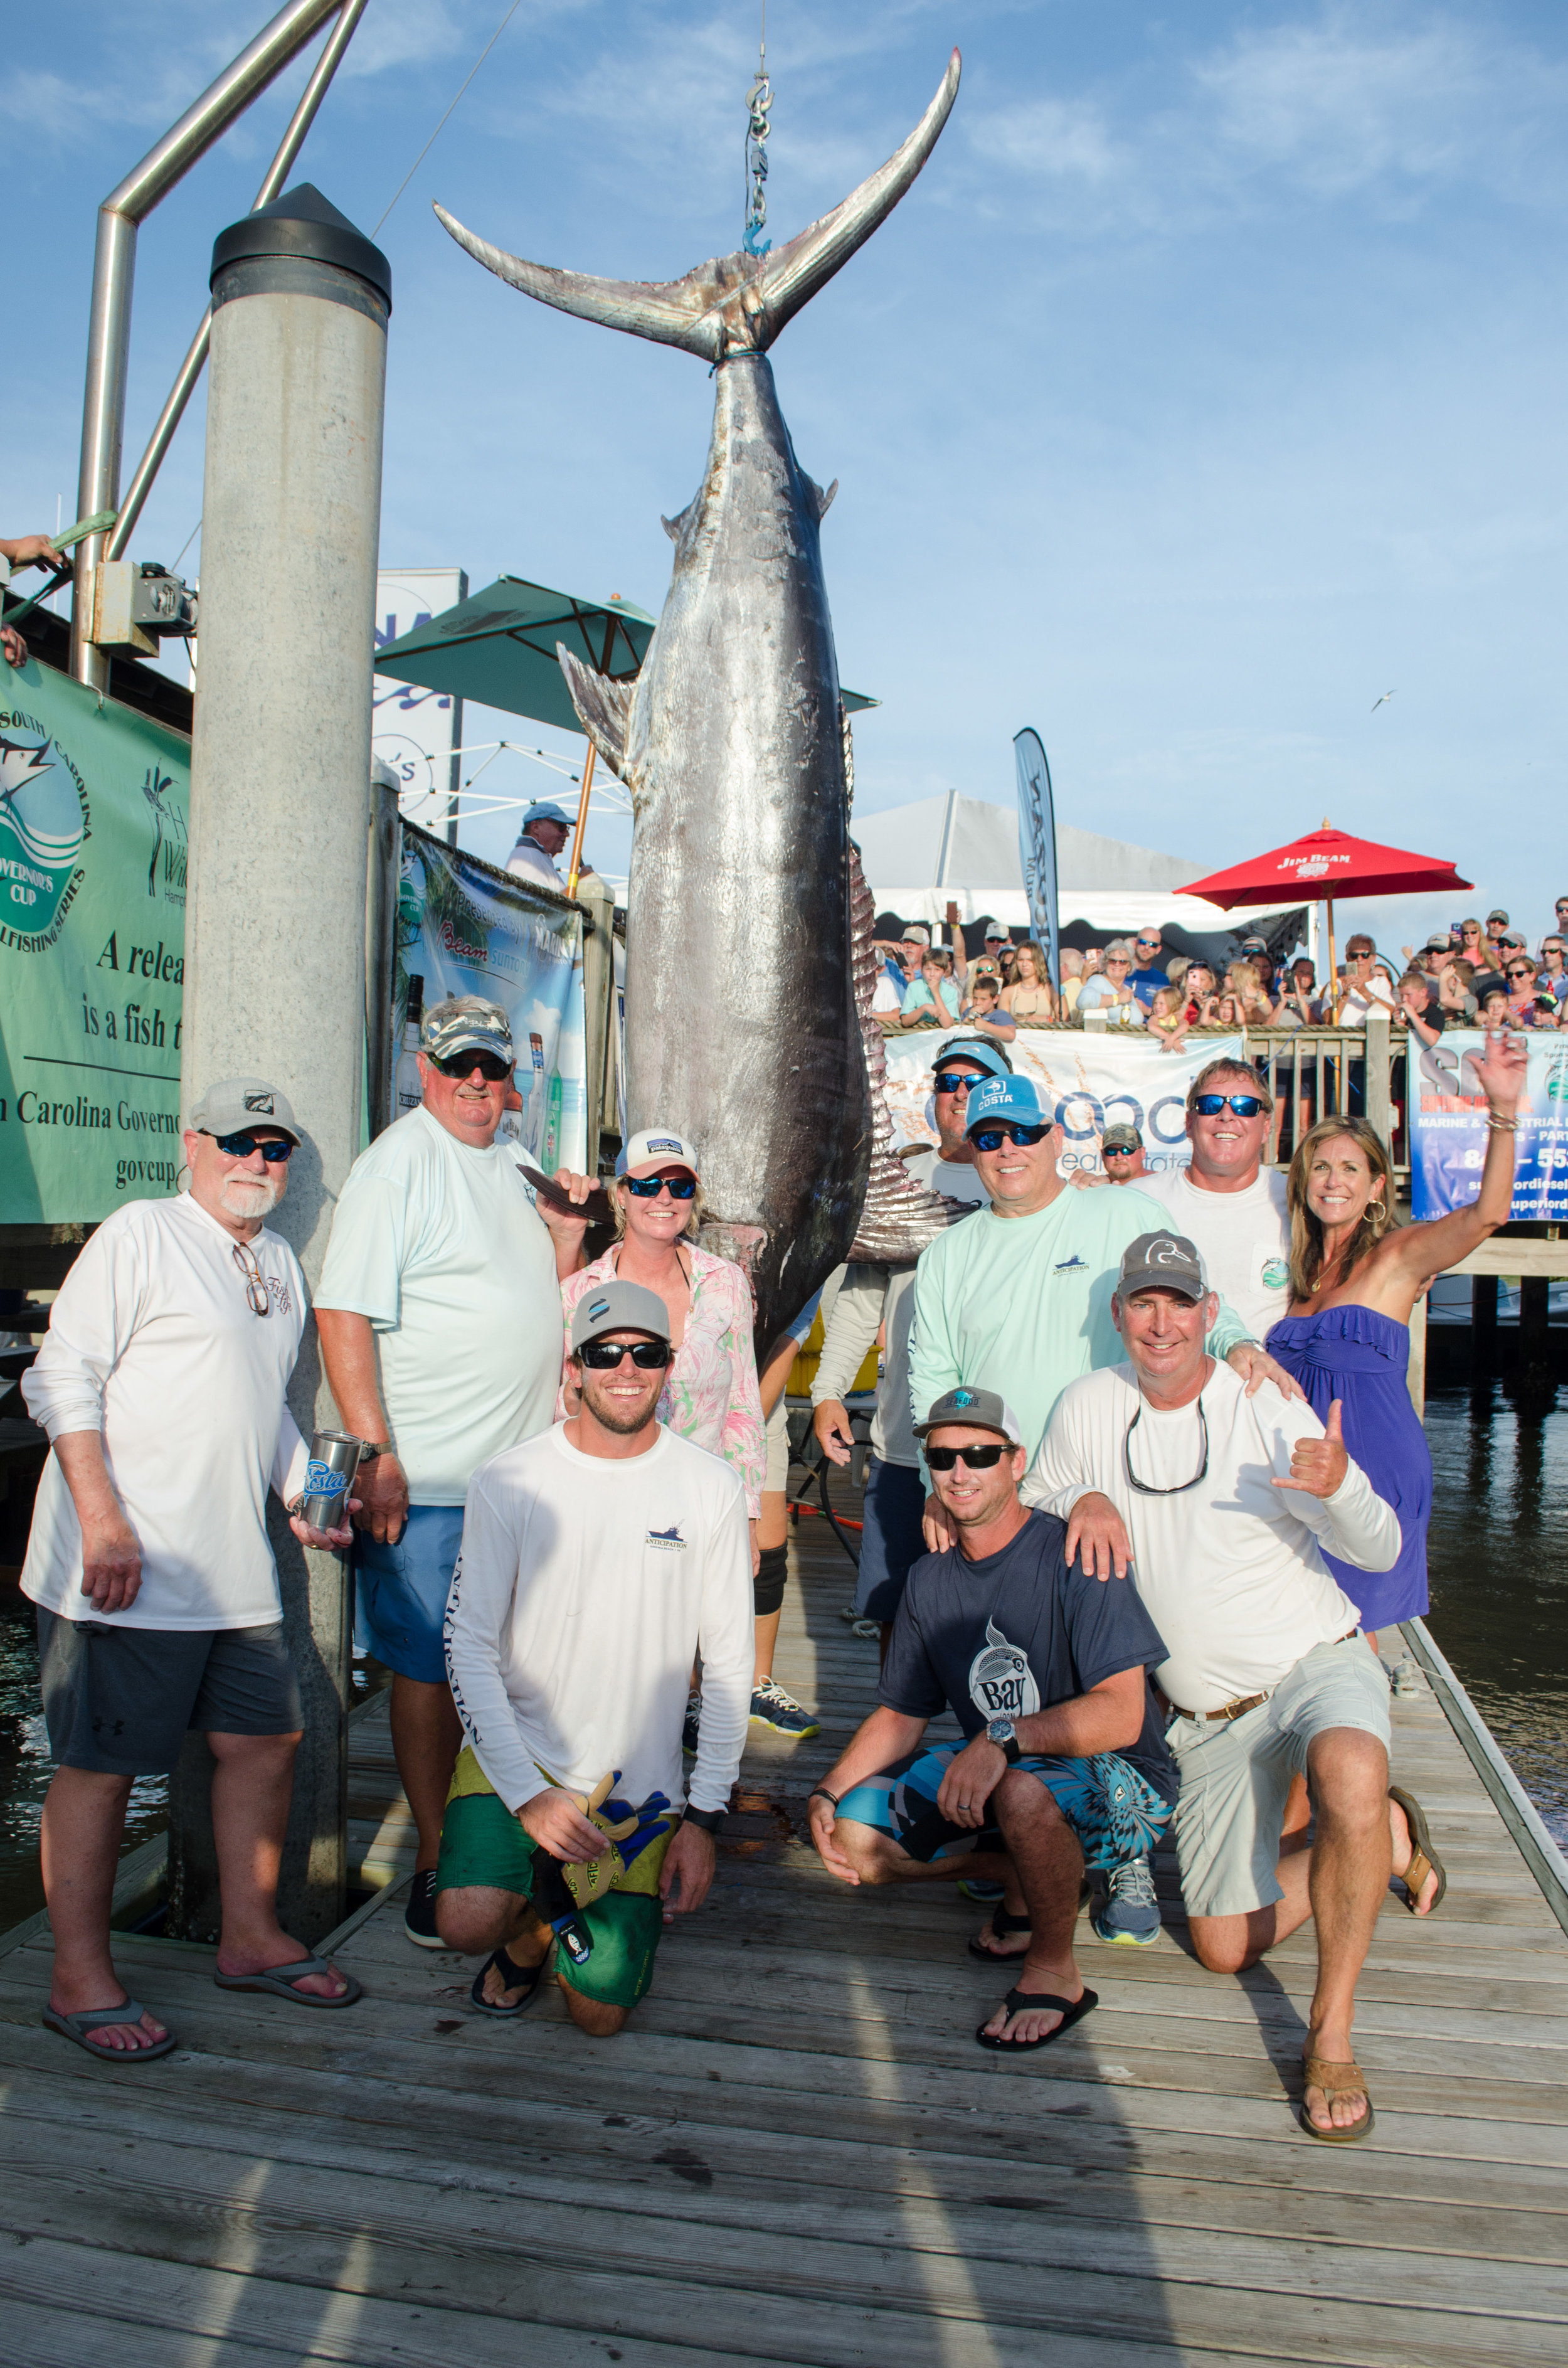 This 484.4 lb blue marlin was caught aboard the Anticipation during the Edisto Invitational Billfish Tournament last year. As mandated by the Series' wanton waste rule, the crew was required to keep the fish properly iced and to clean it for consumption. Biological samples were also collected by South Carolina Department of Natural Resources staff. Last year, the Series boasted a 99.7% billfish release rate, with 309 billfish released and only one landed.